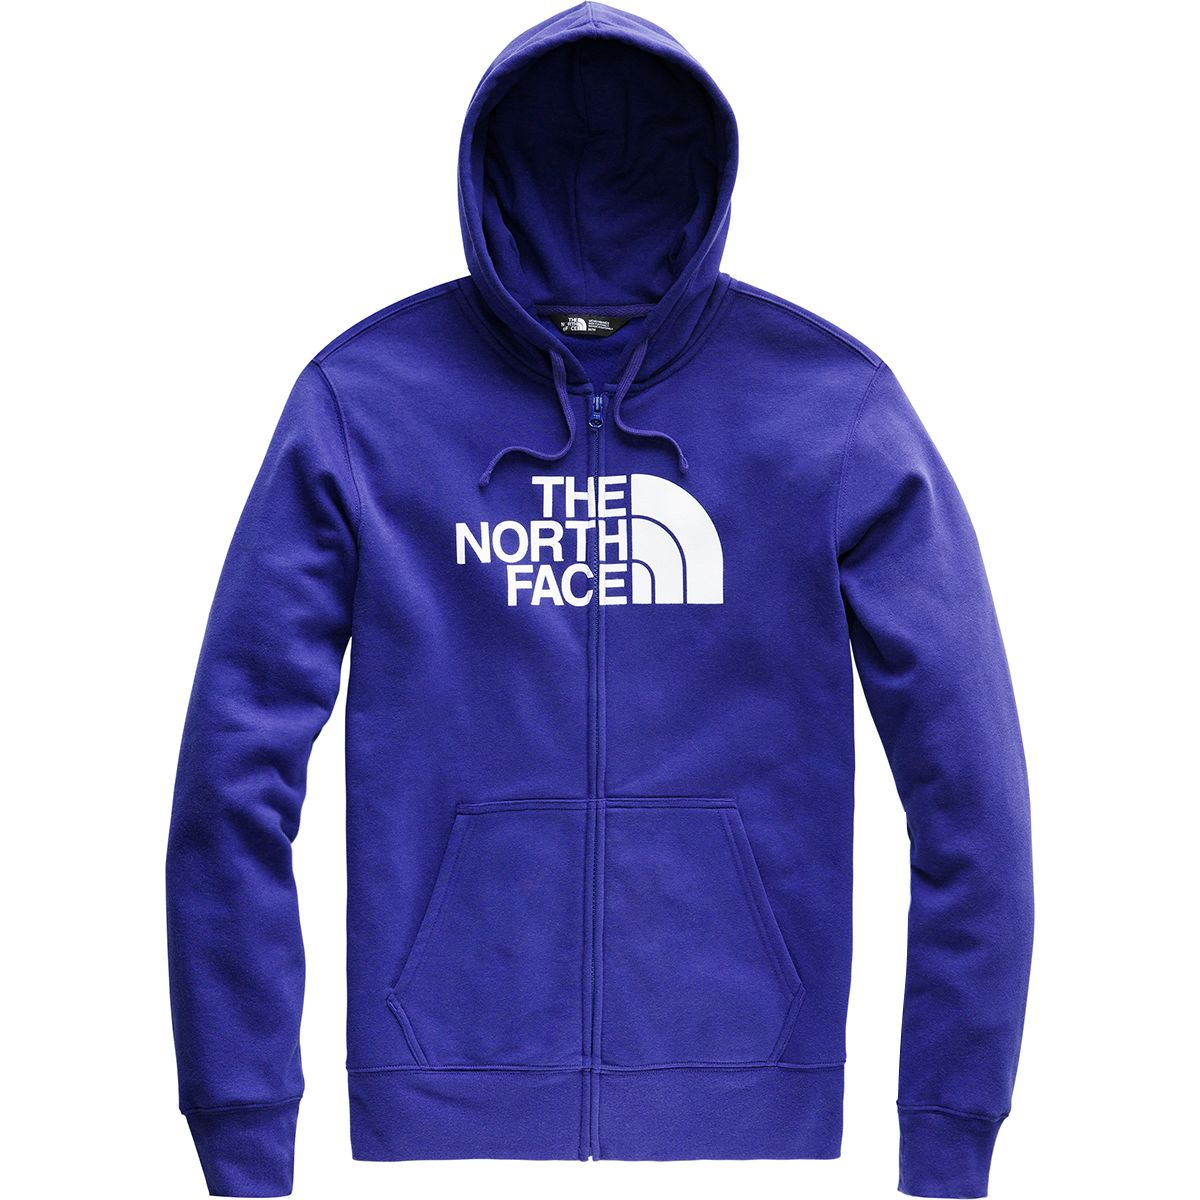 The North Face Half Dome Full-Zip Hoodie